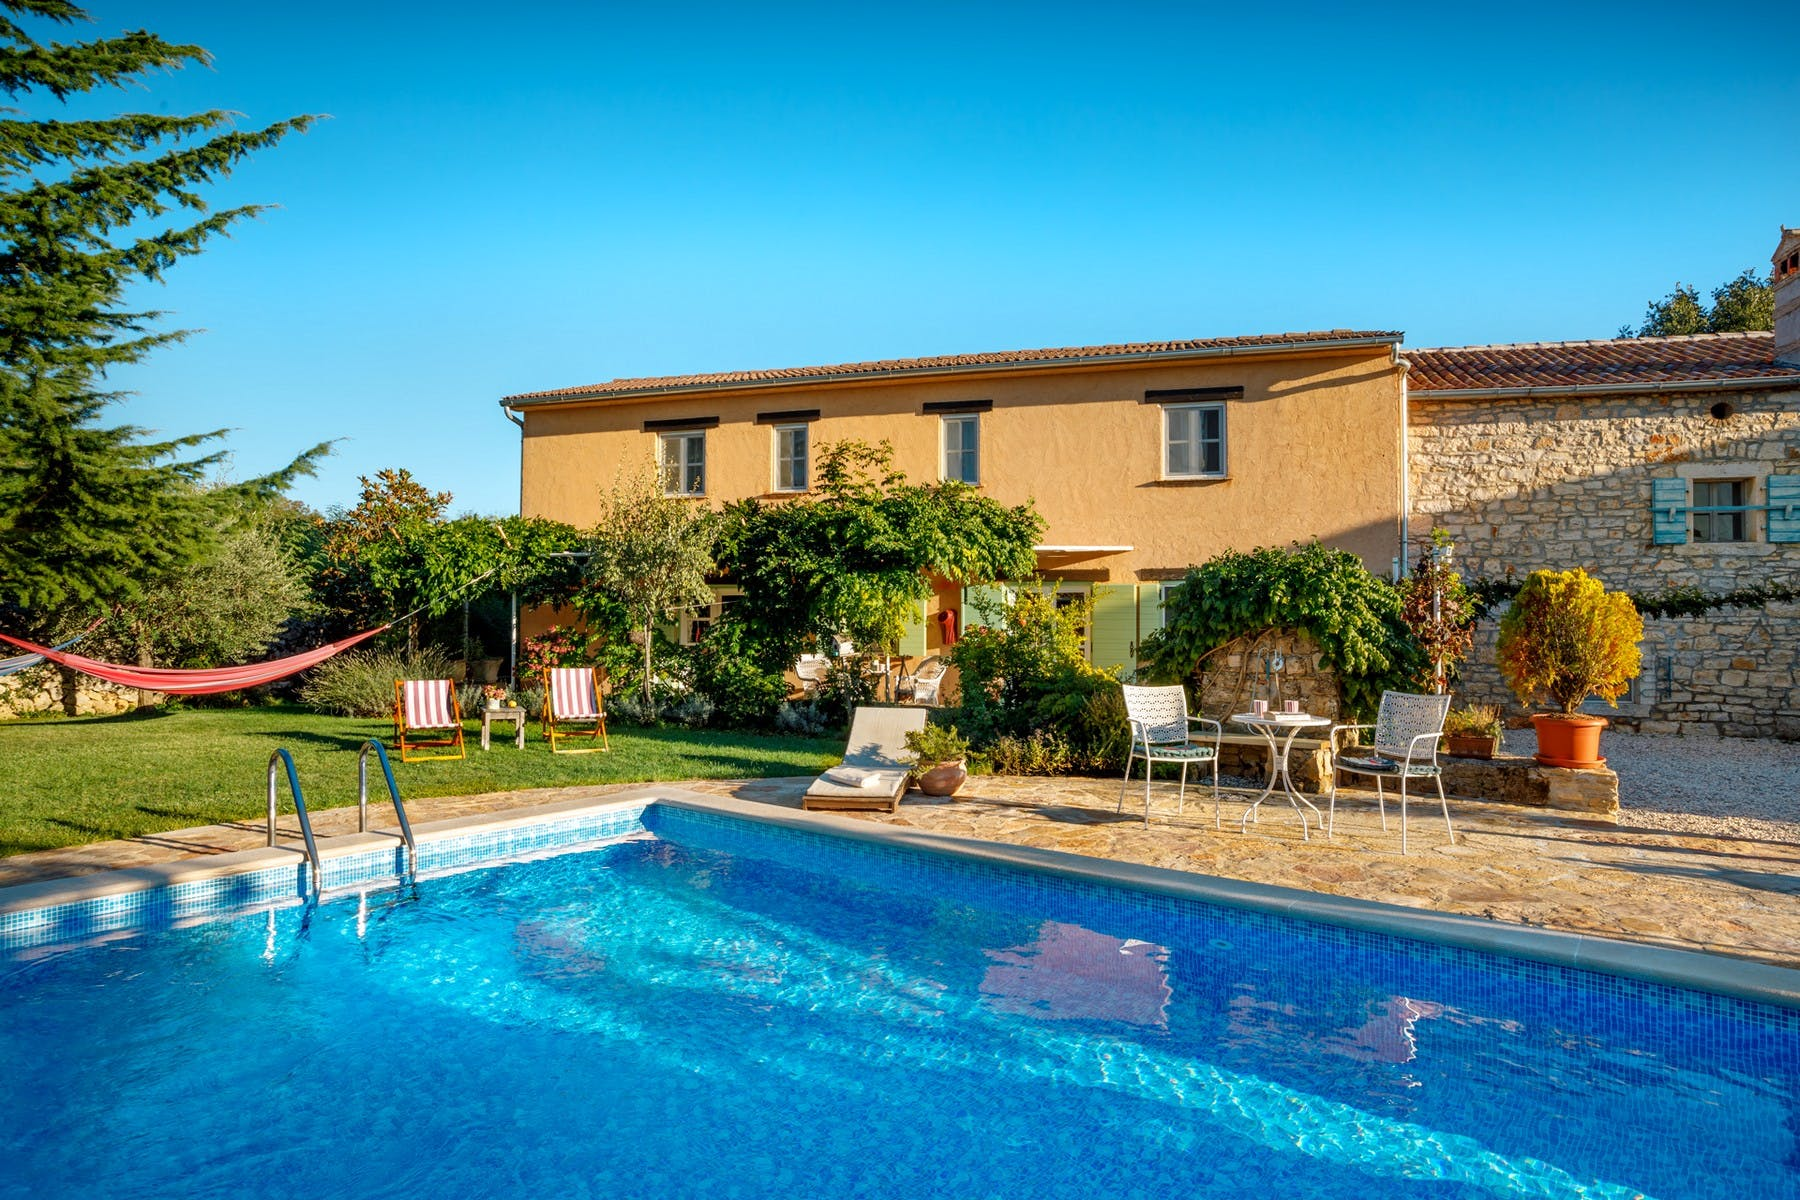 Traditional Istrian home with swimming pool